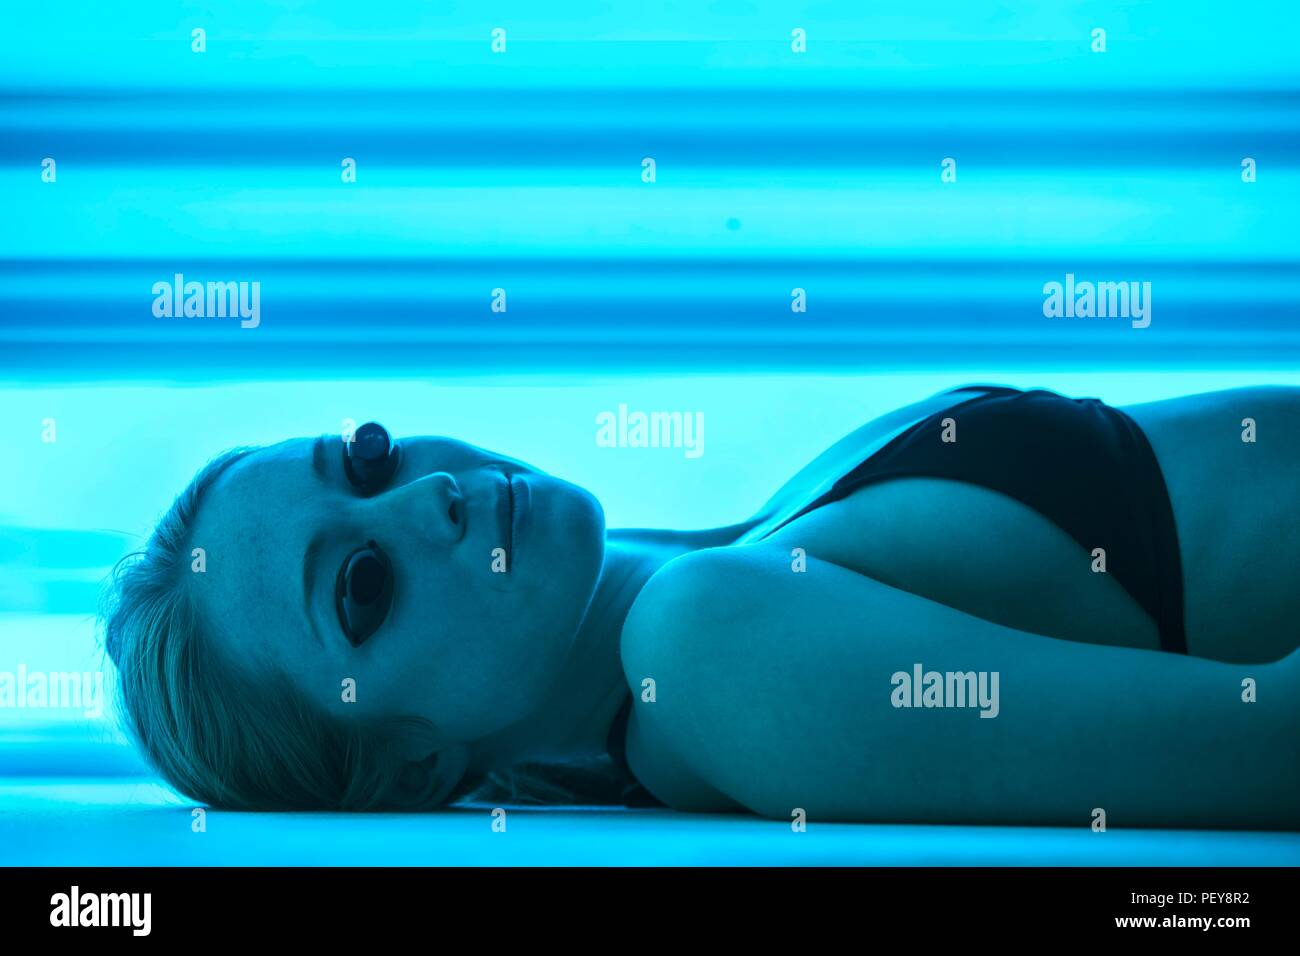 Woman wearing protective goggles in tanning booth. - Stock Image